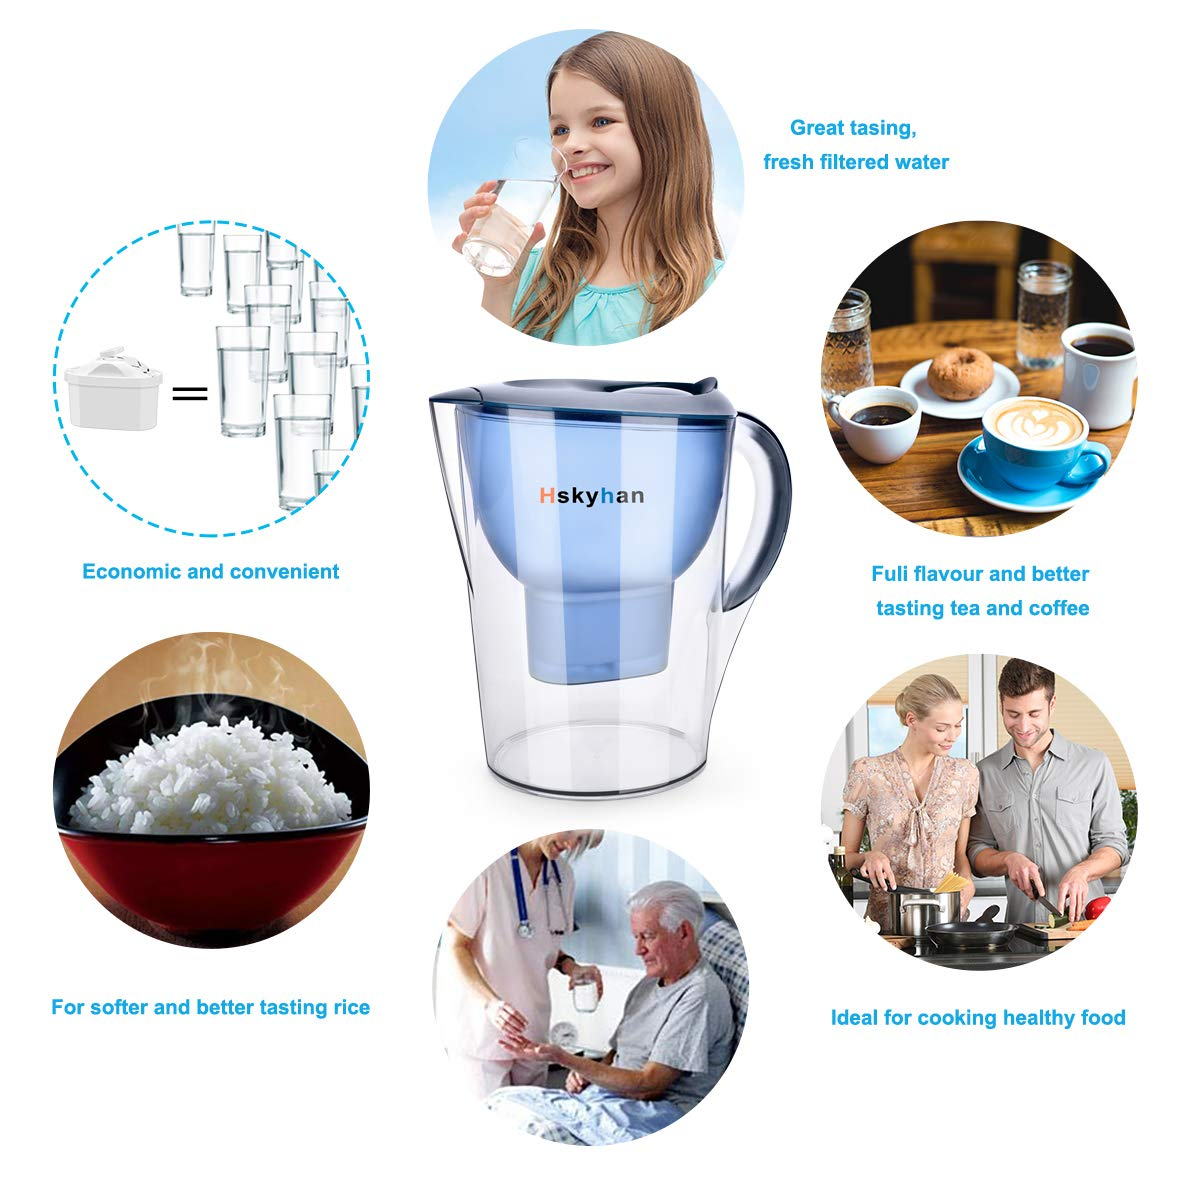 Hskyhan Alkaline Water Filter Pitcher - 3.5 Liters Improve PH, 2 Filters Included, 7 Stage Filteration System to Purify, Blue by Hskyhan (Image #5)